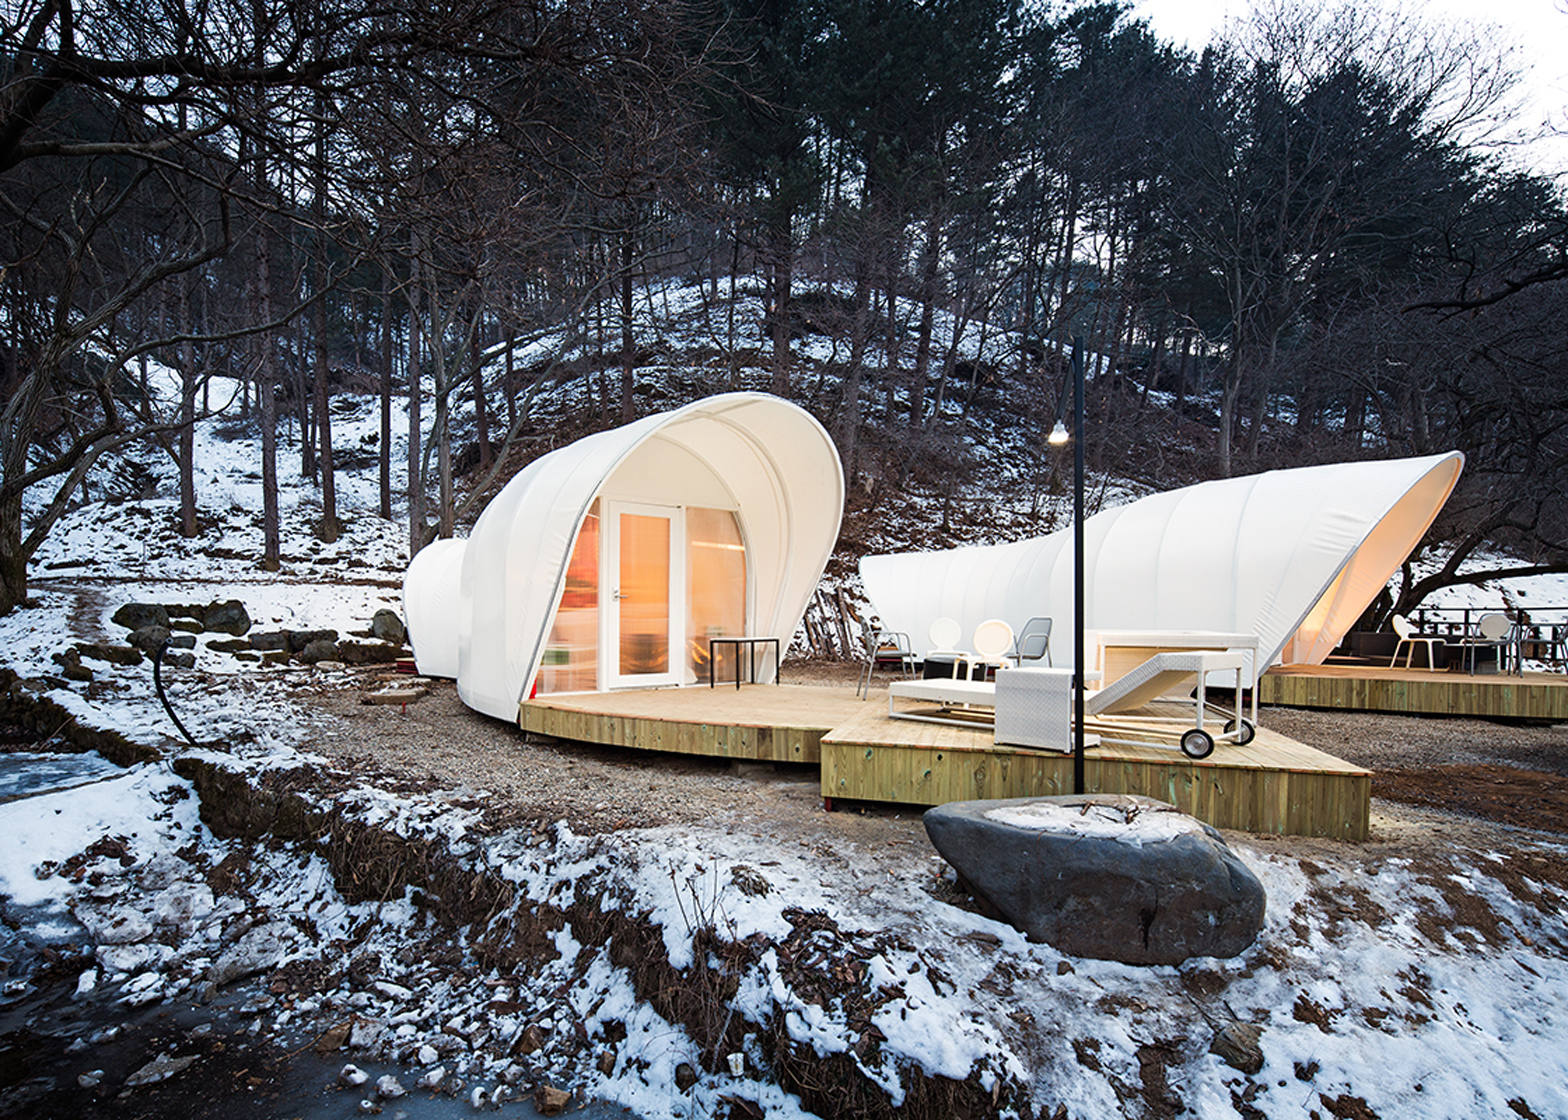 Glamping for Glampers by ArchiWorkshop, South Korea